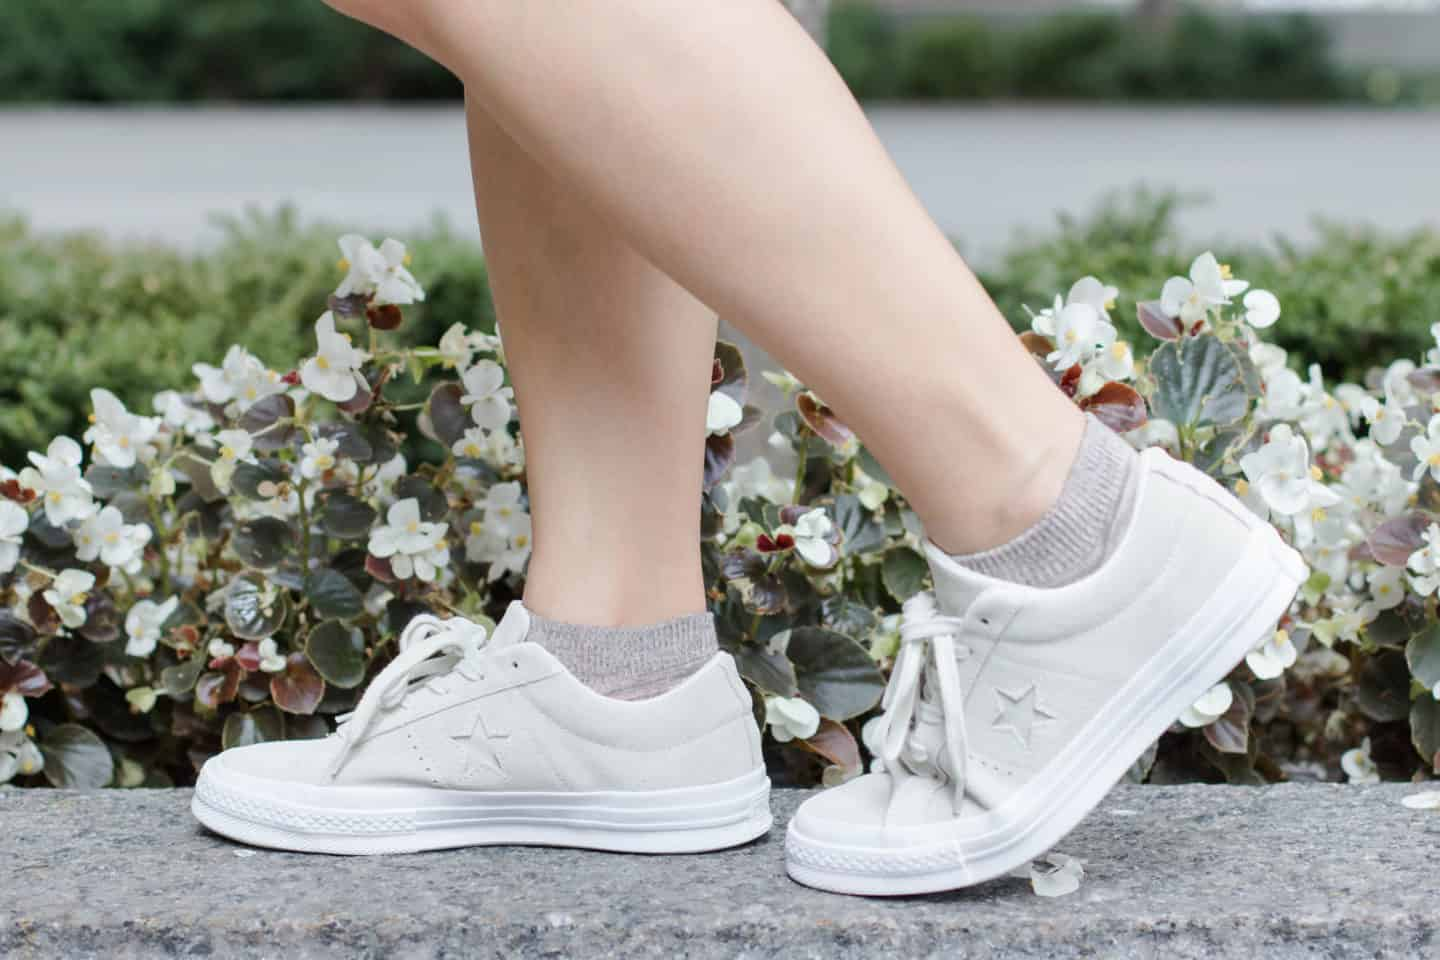 Suede white Converse One Star sneakers